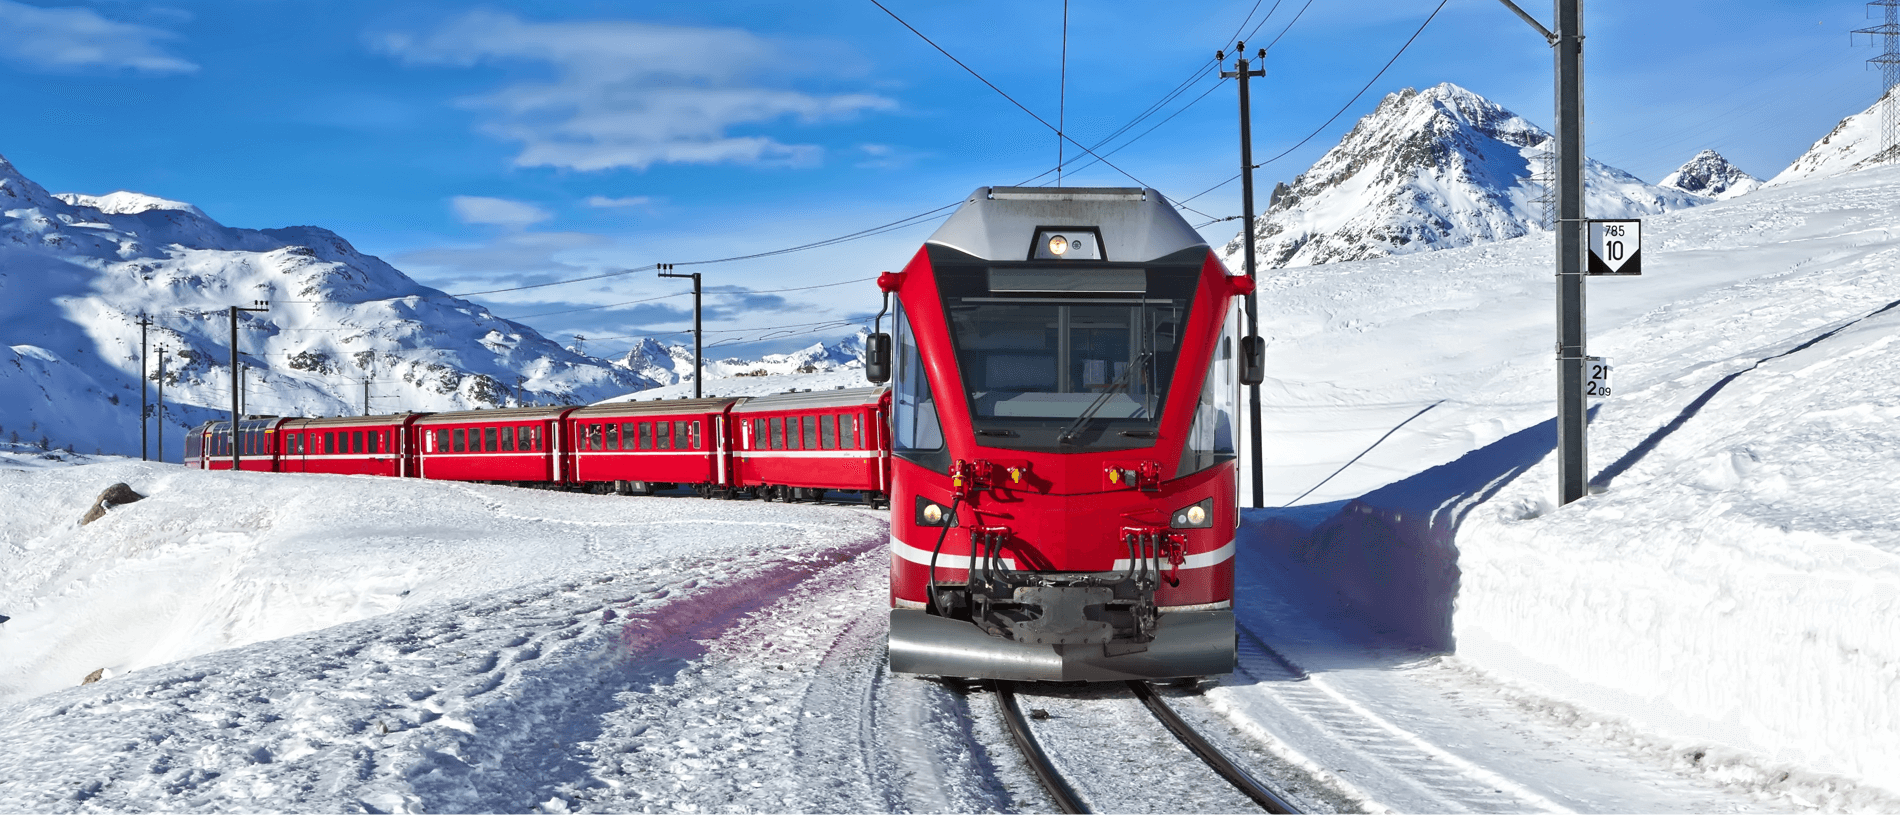 Wintervakantie met Bernina Express, Glacier Express in Zwitserland